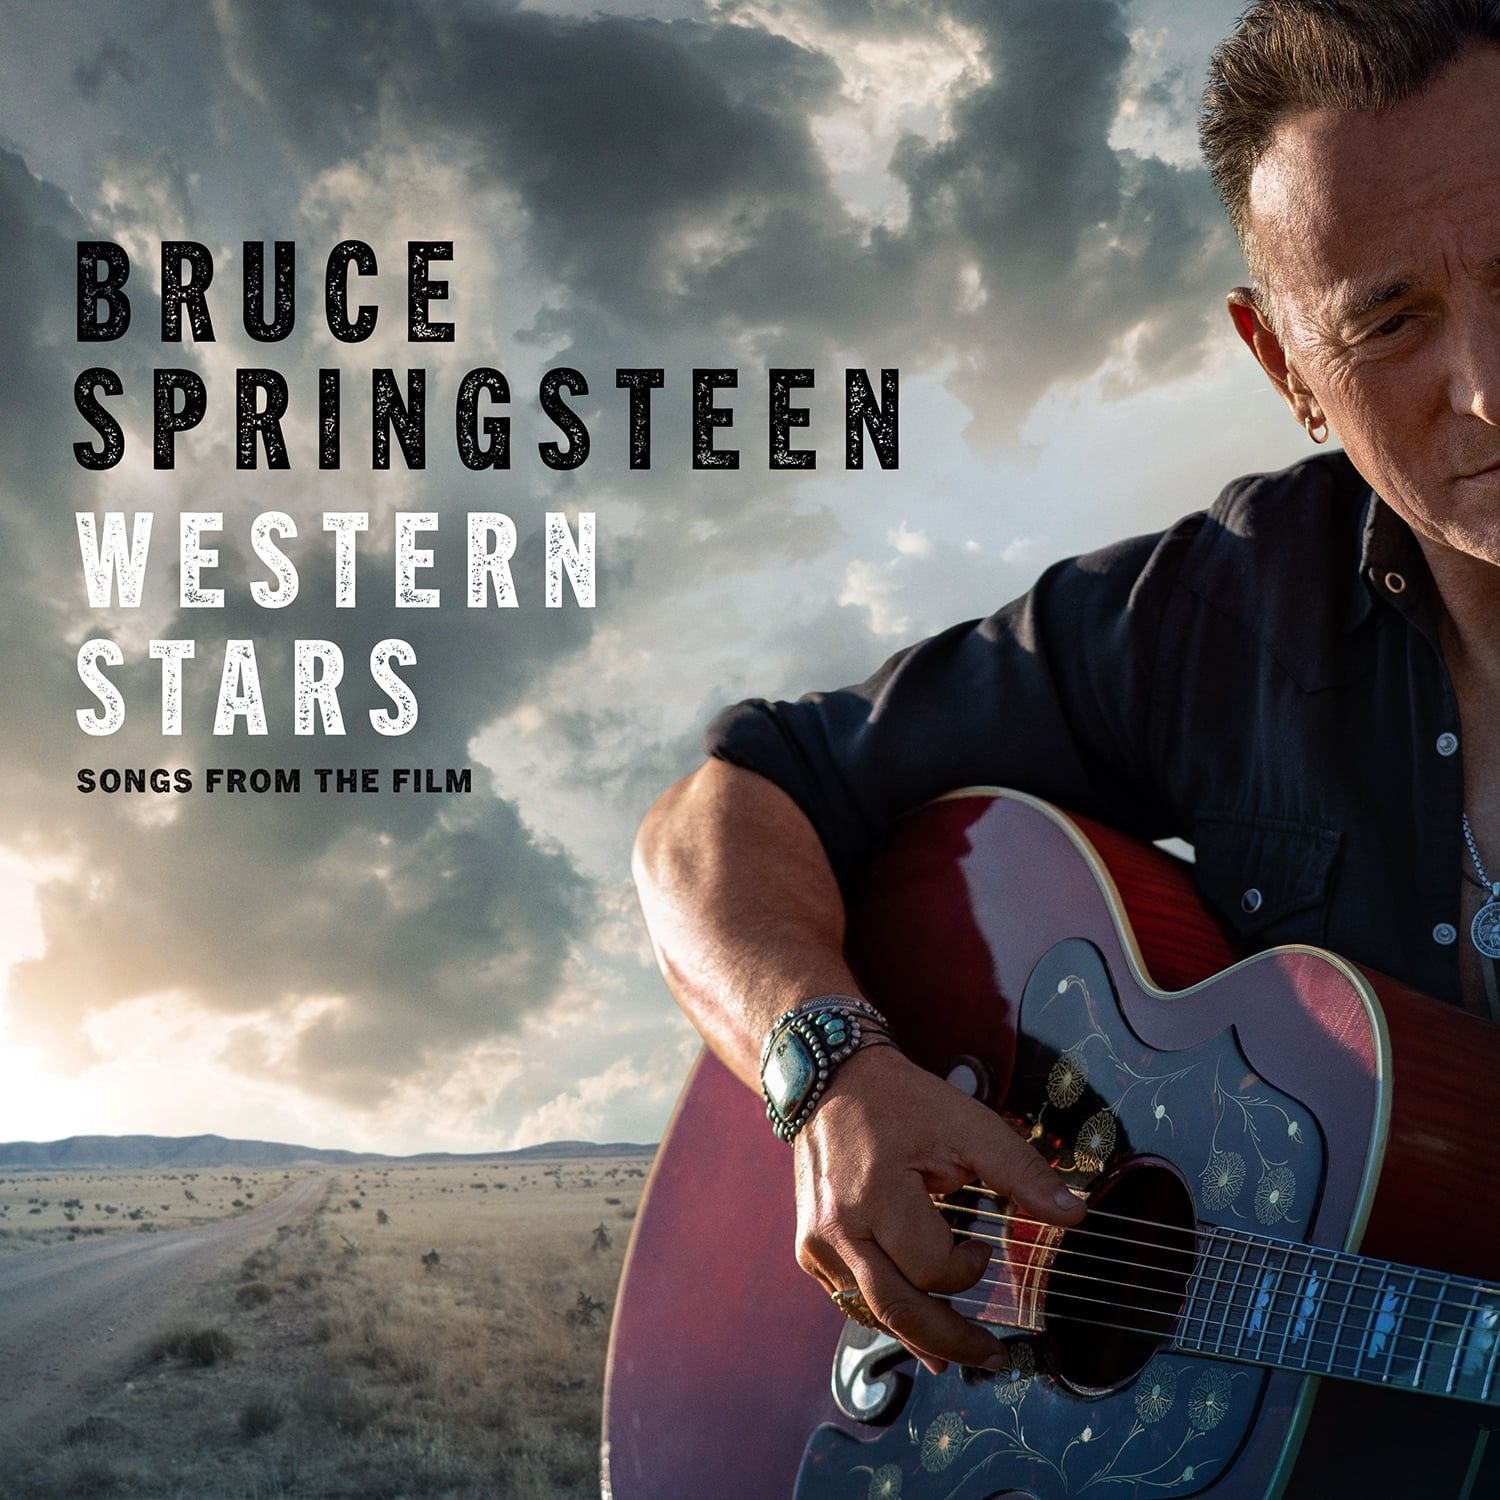 Pin by Sherri In KC on Music Bruce springsteen, Songs